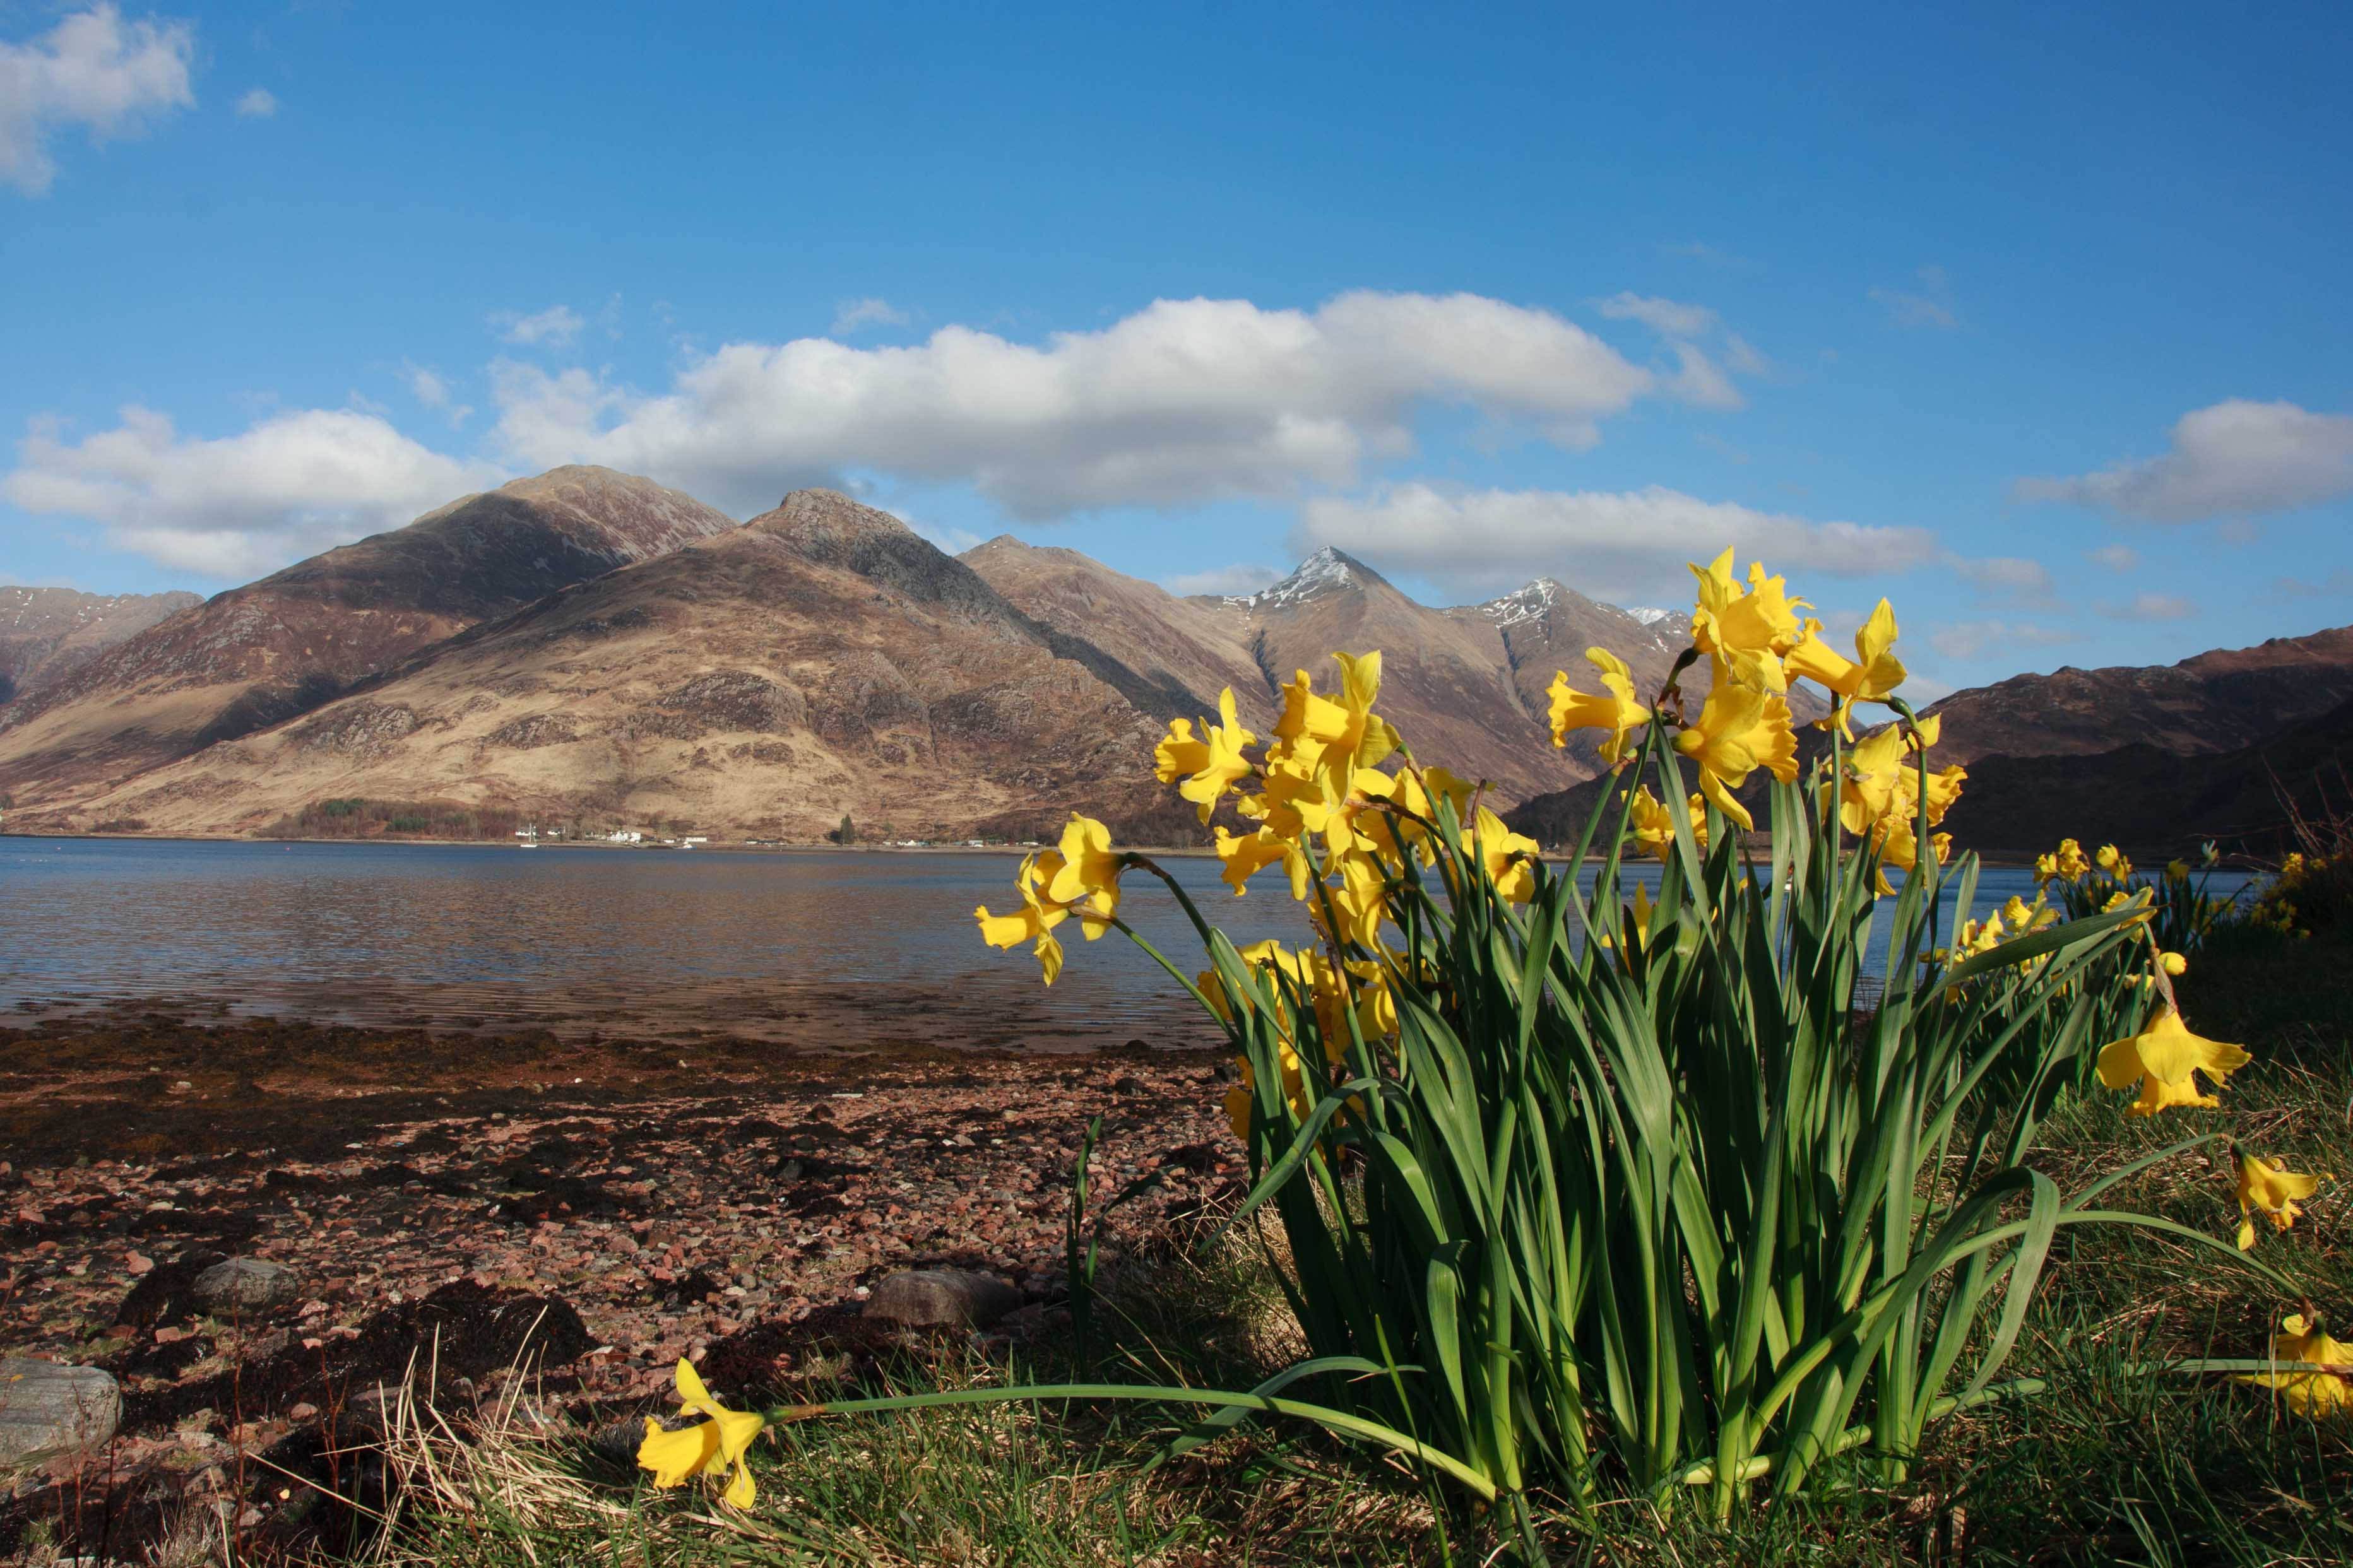 The Severn Sisters of Kintail from Ratagan Youth Hostel on  Loch Duich. April 2013.